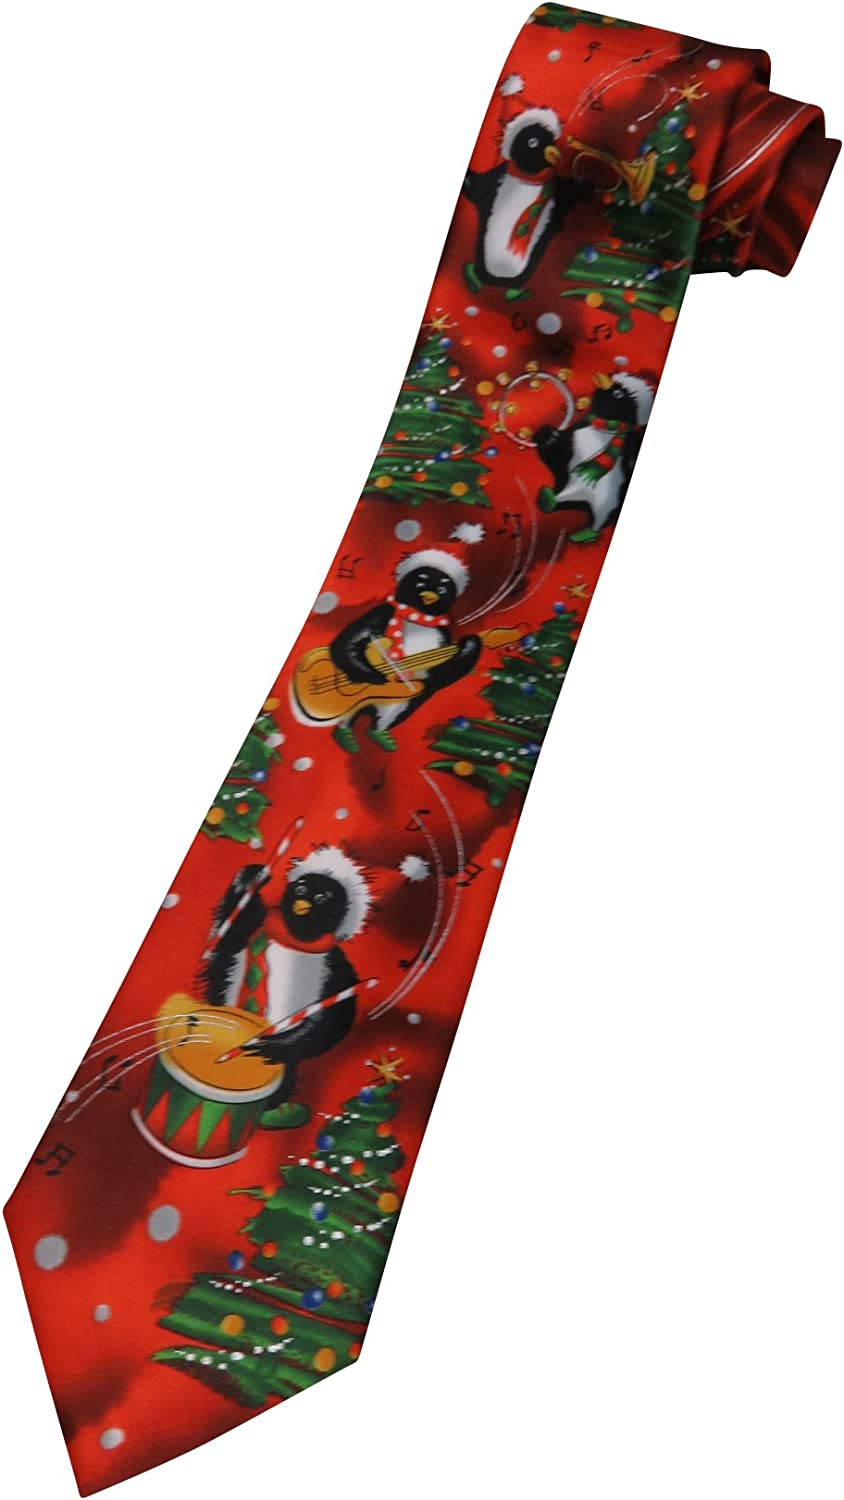 Jerry Garcia Neck Tie Collection 72 Hold Hand Christmas